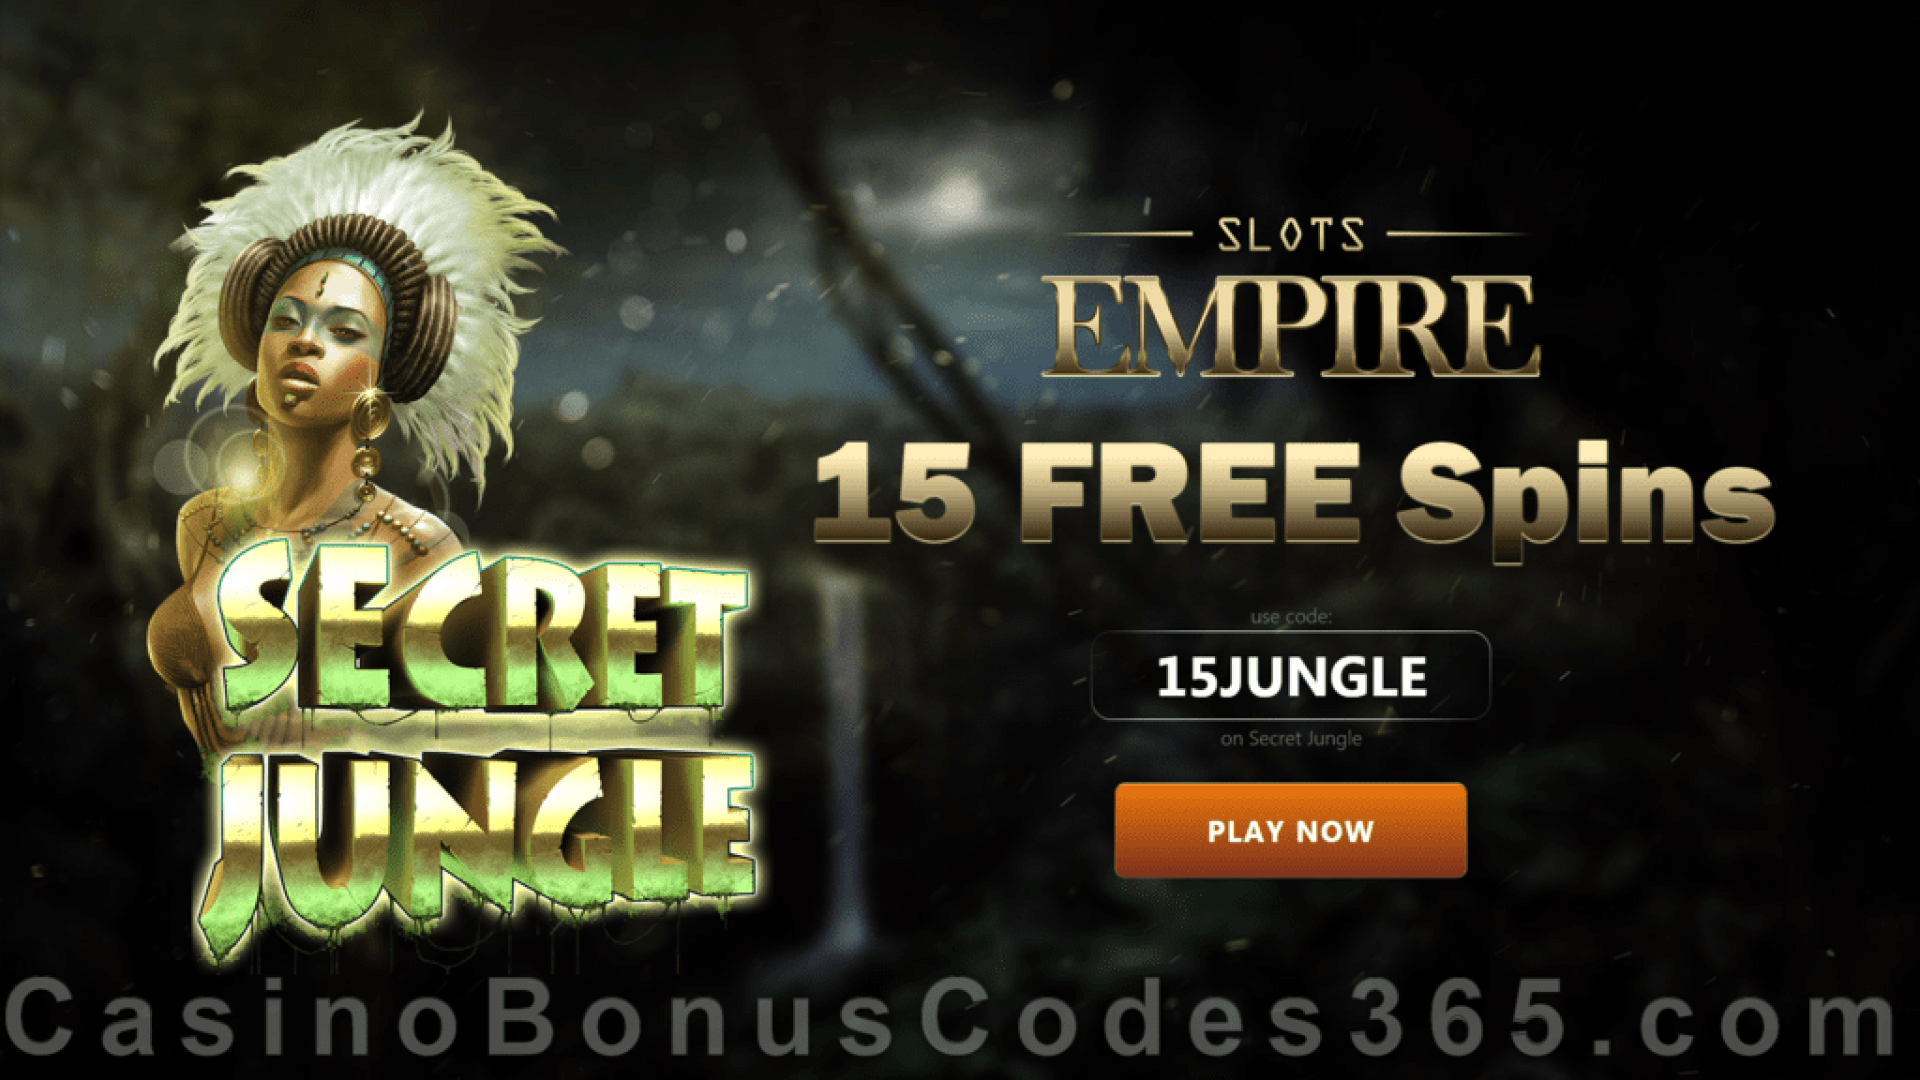 Slots Empire 15 FREE Spins on RTG Secret Jungle Special Welcome Offer